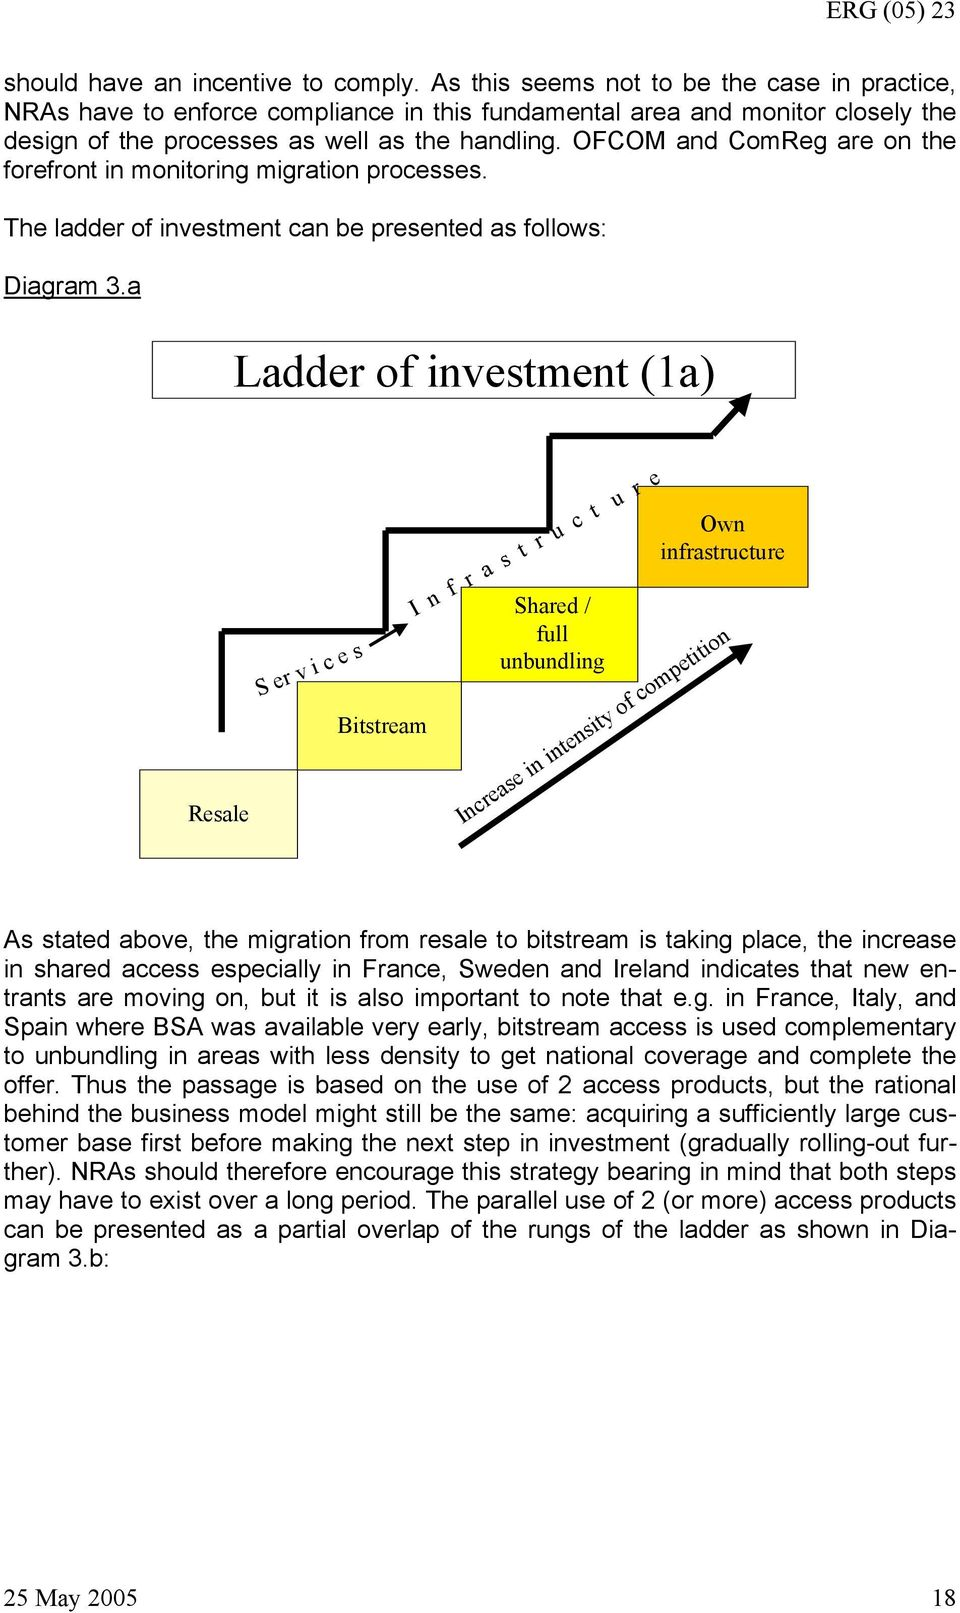 OFCOM and ComReg are on the forefront in monitoring migration processes. The ladder of investment can be presented as follows: Diagram 3.